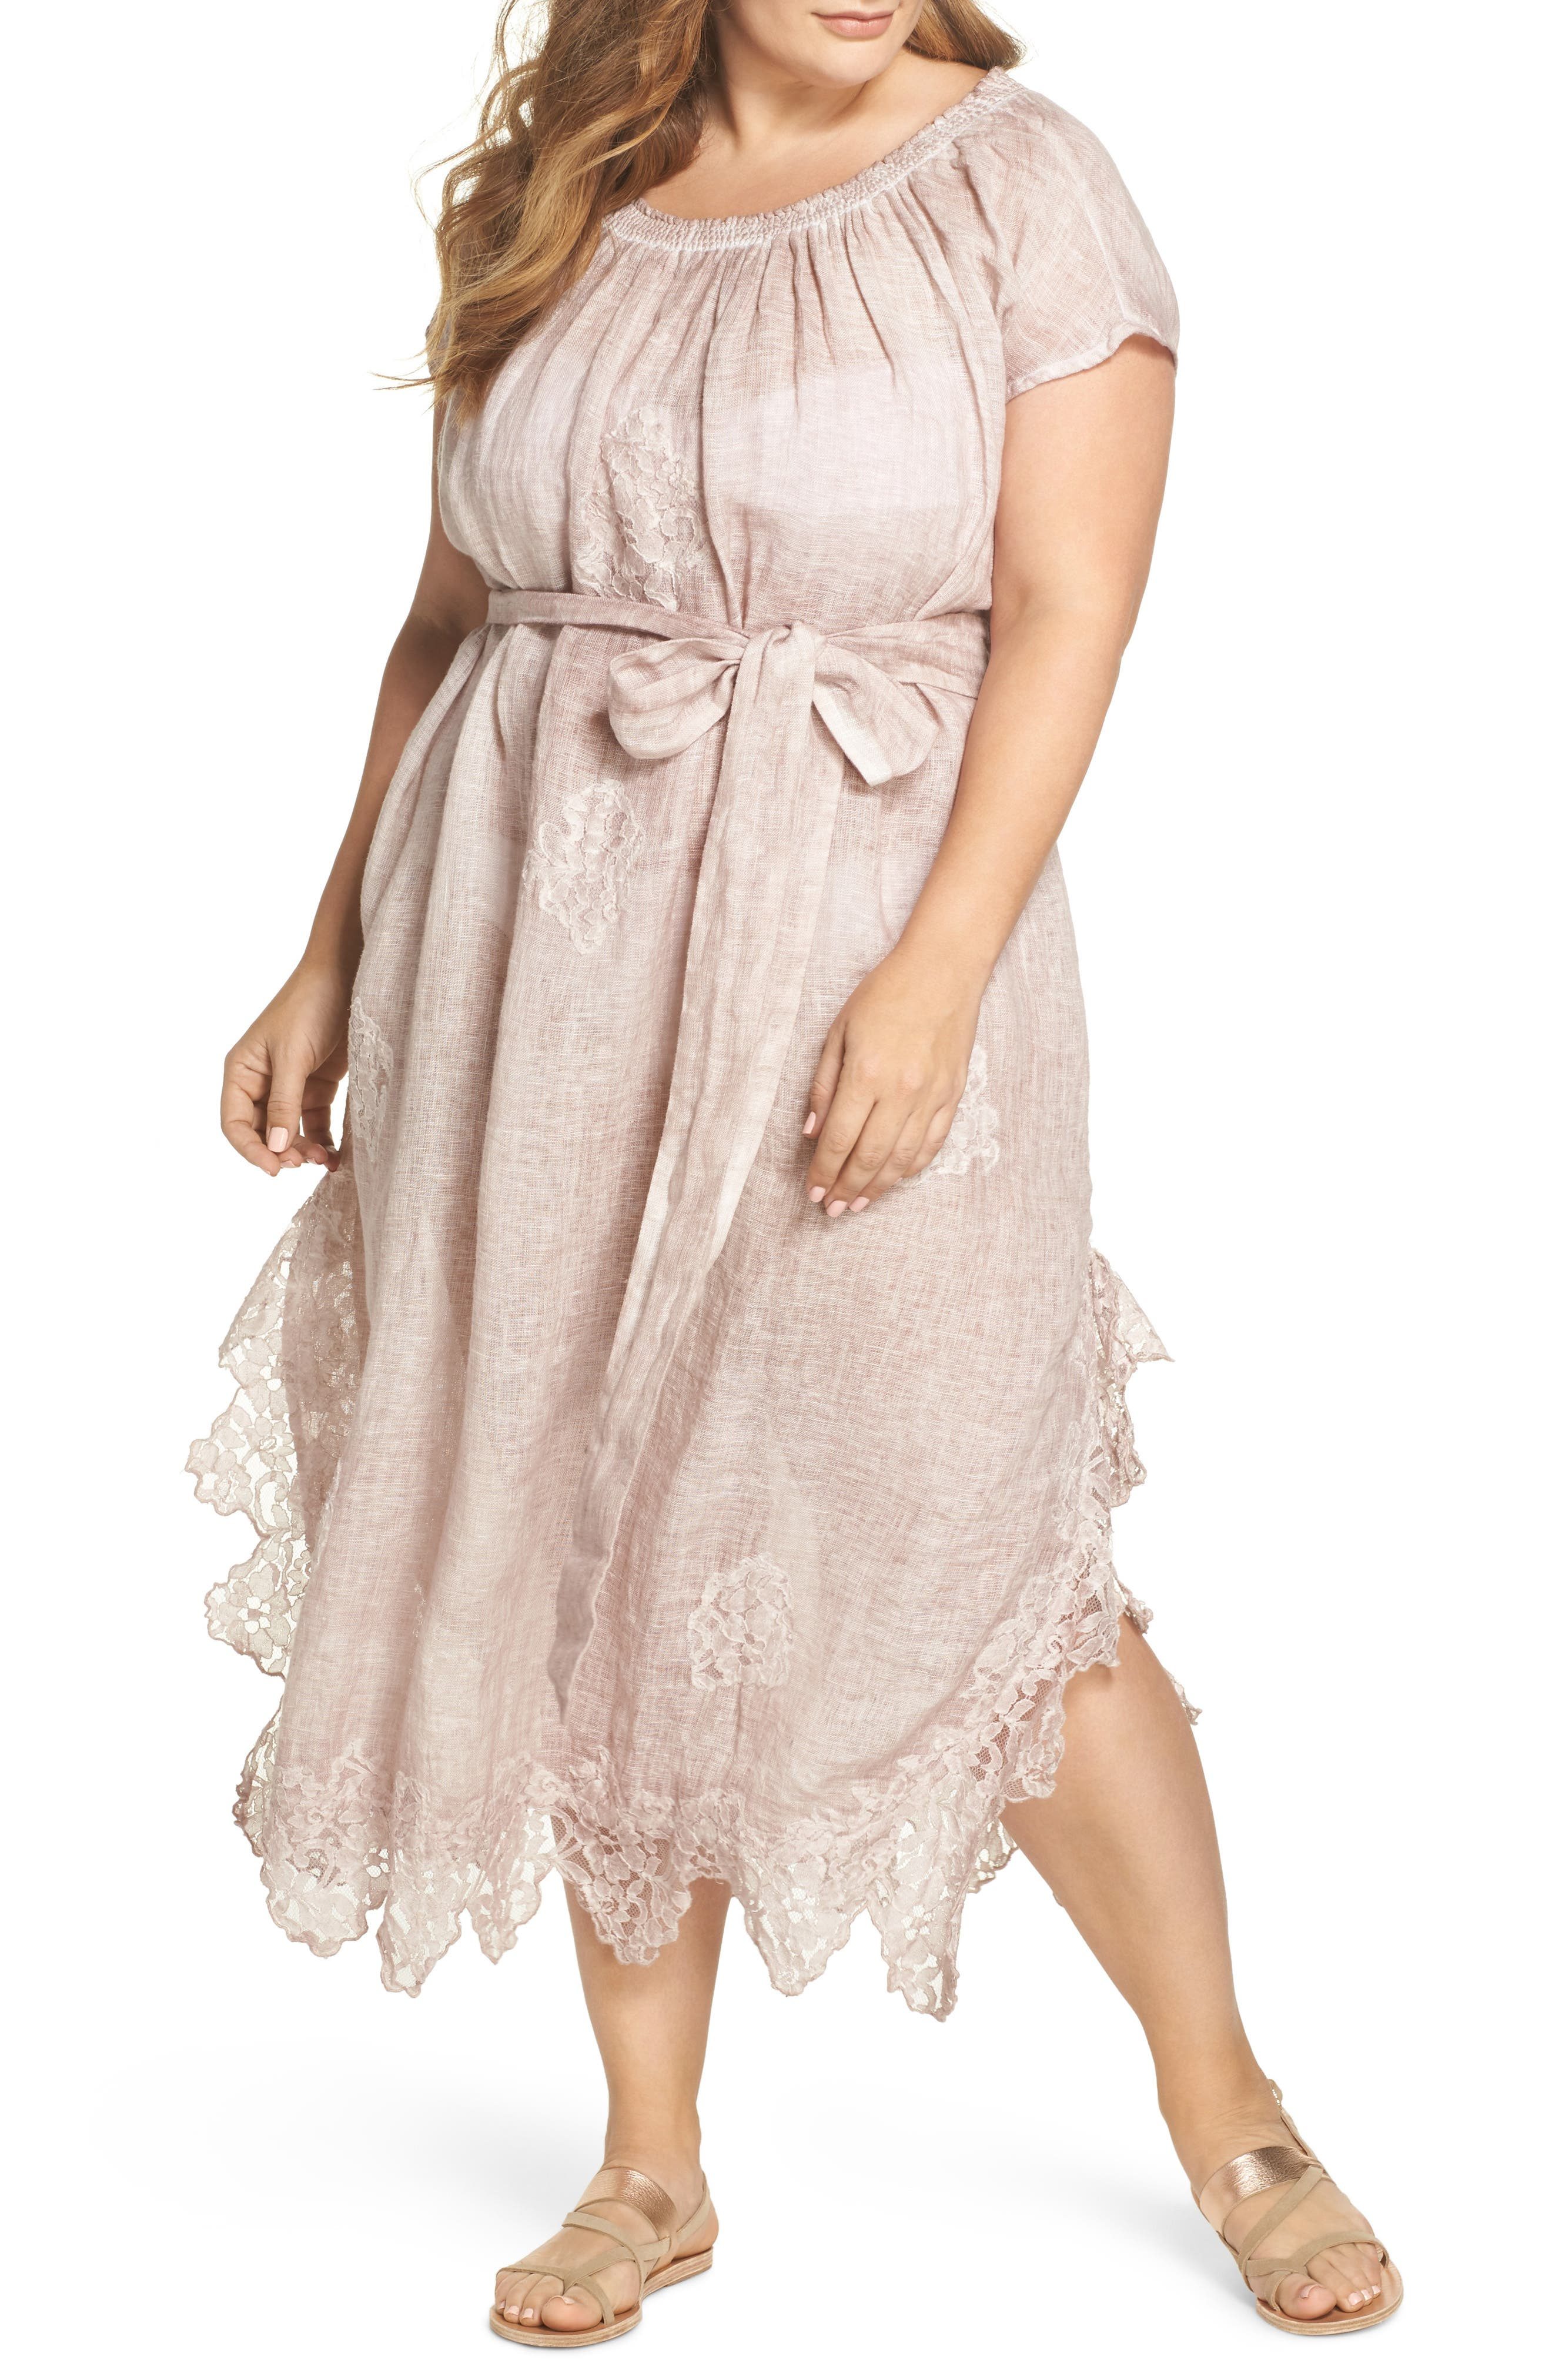 Alternate Image 1 Selected - Muche et Muchette Daisy Linen Cover-Up Dress (Plus Size)